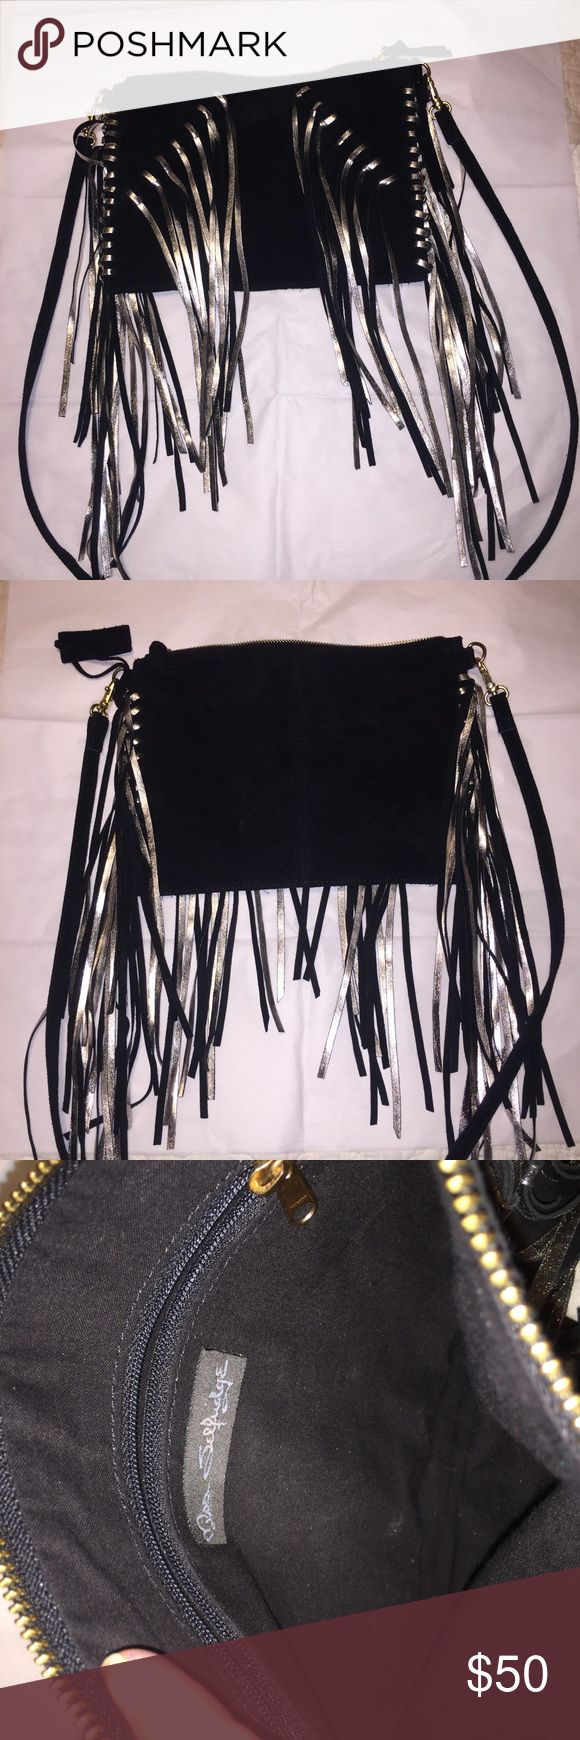 """✨Miss Selfridge Leather Fringe Cross Body Small-medium sized black suede leather bag. Bag includes inner zipper and detachable strap. It measures 11"""" across and 8""""high. x Miss Selfridge Bags Crossbody Bags"""